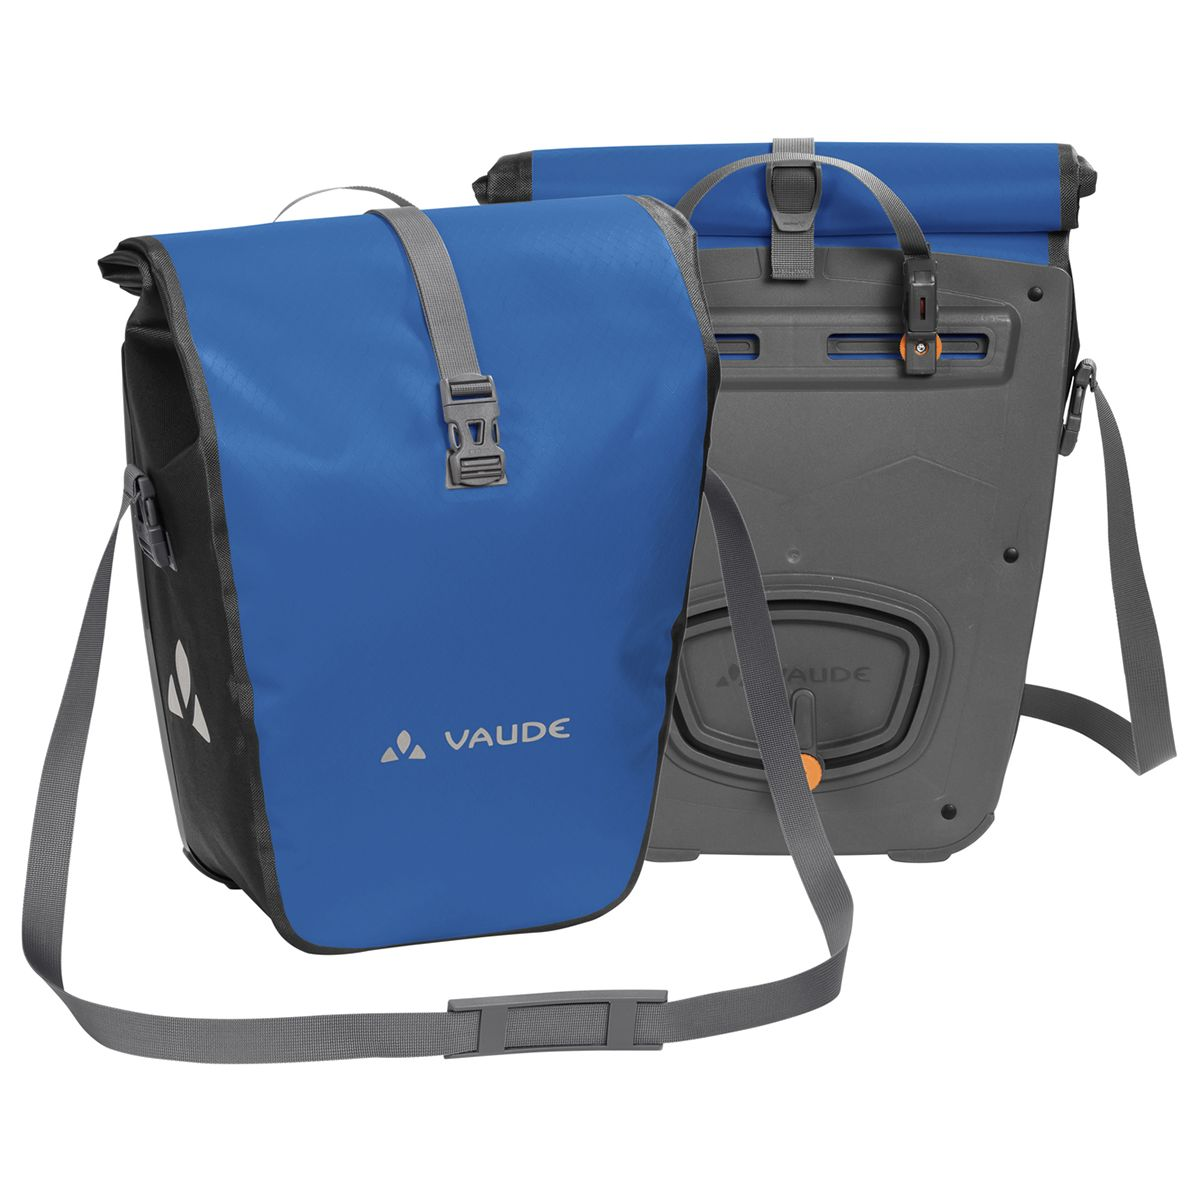 AQUA BACK II set of two pannier bags